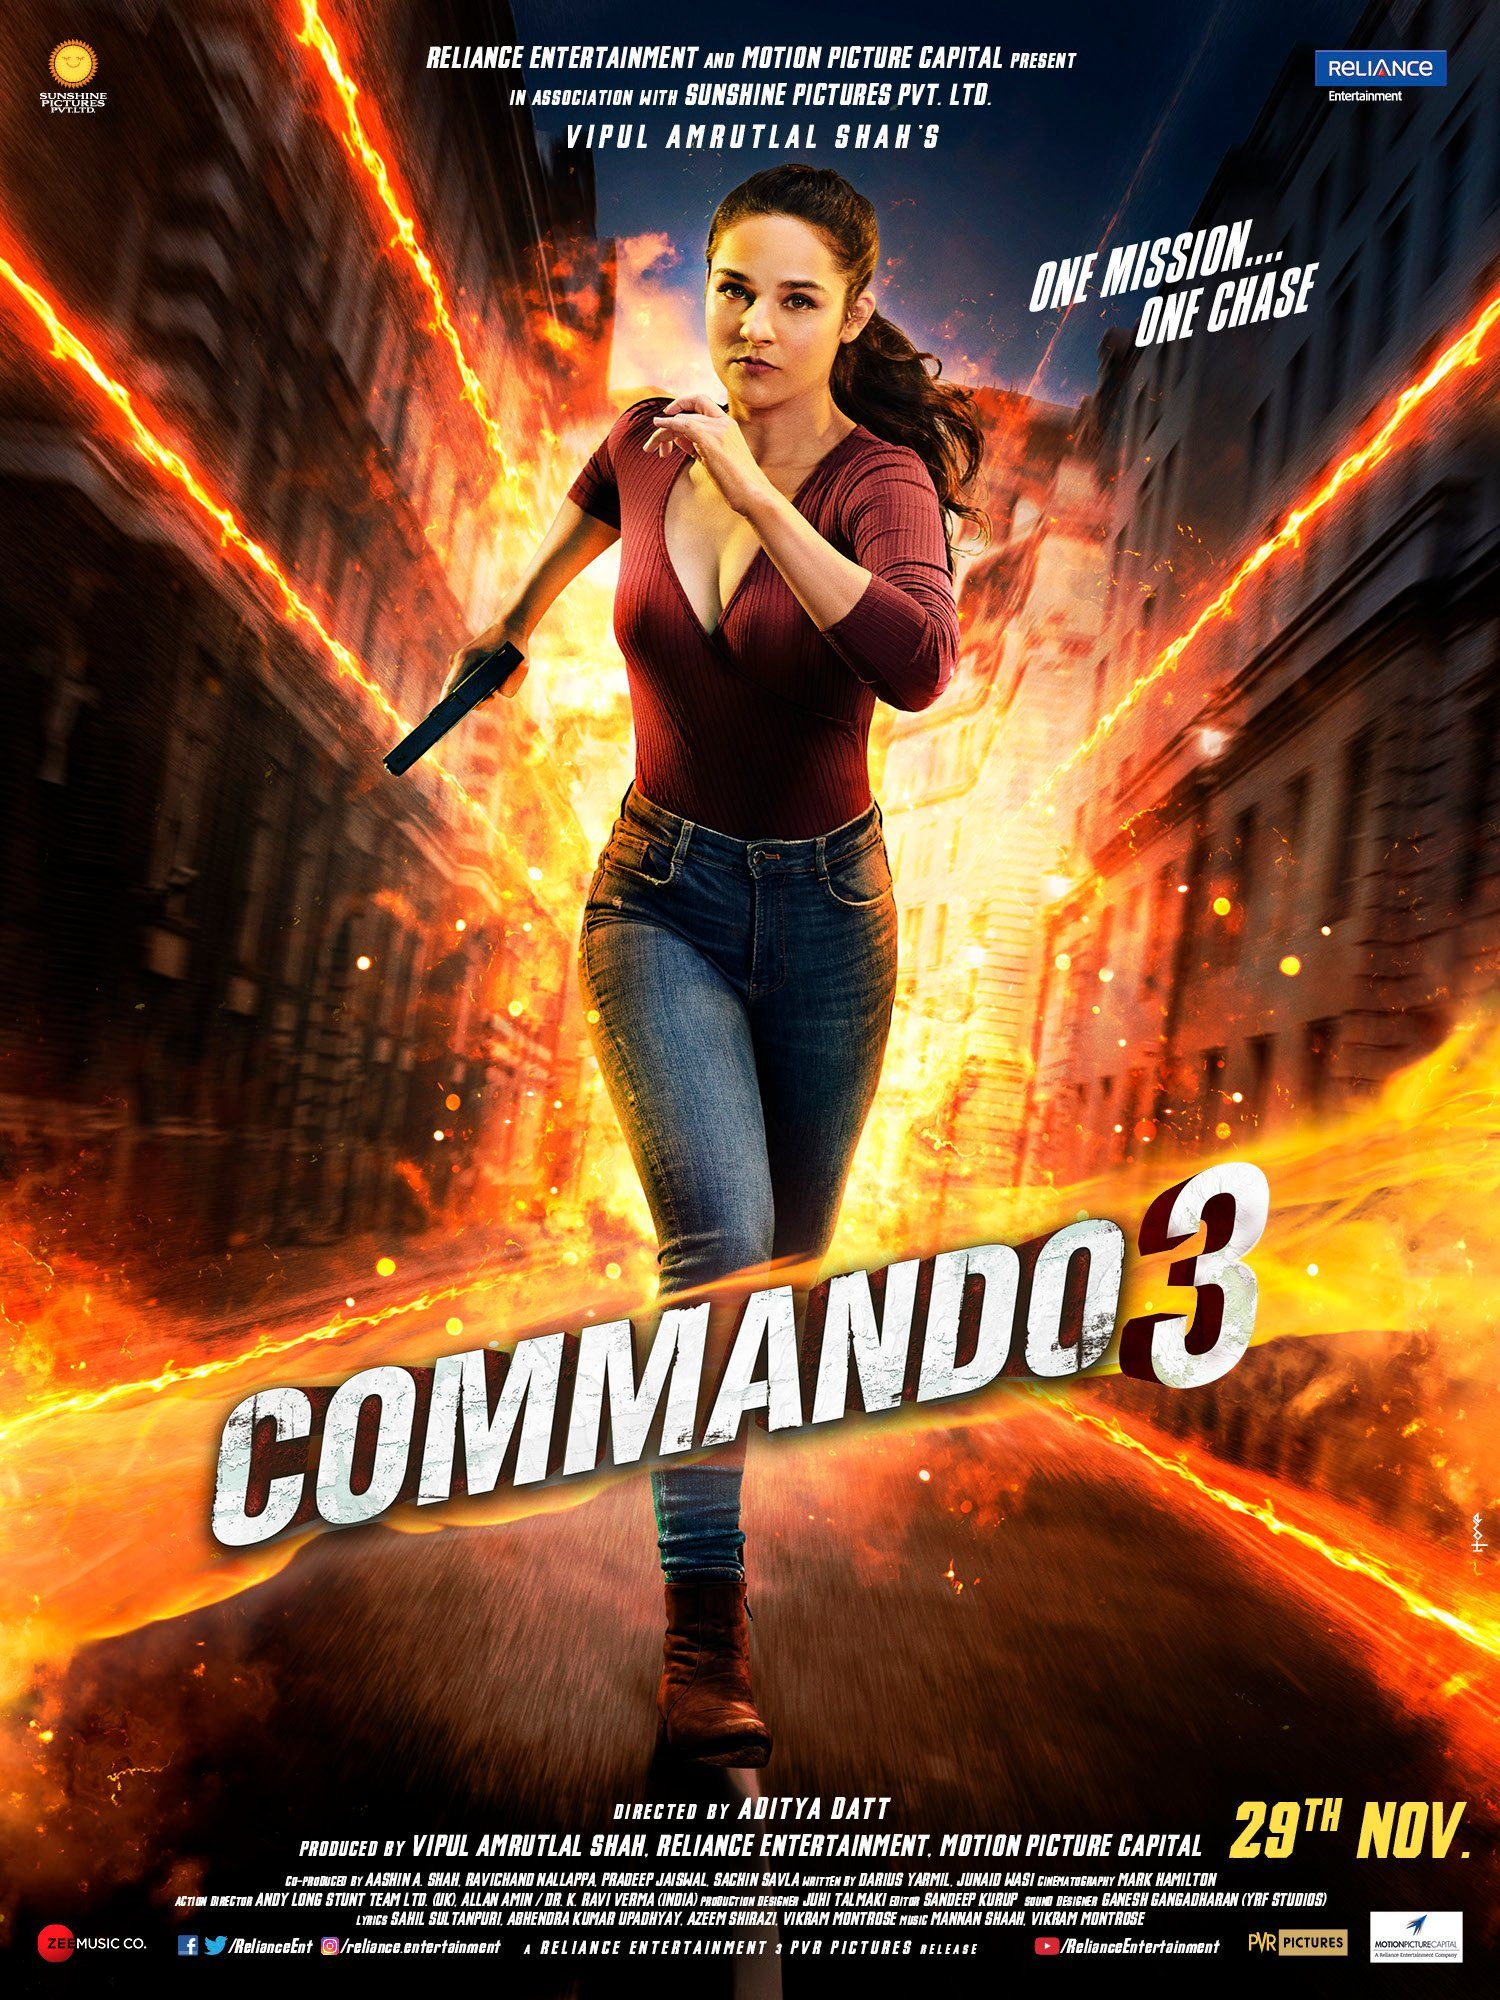 Commando 3 (2019) Hindi Full Movie Watch Online In HD 720p